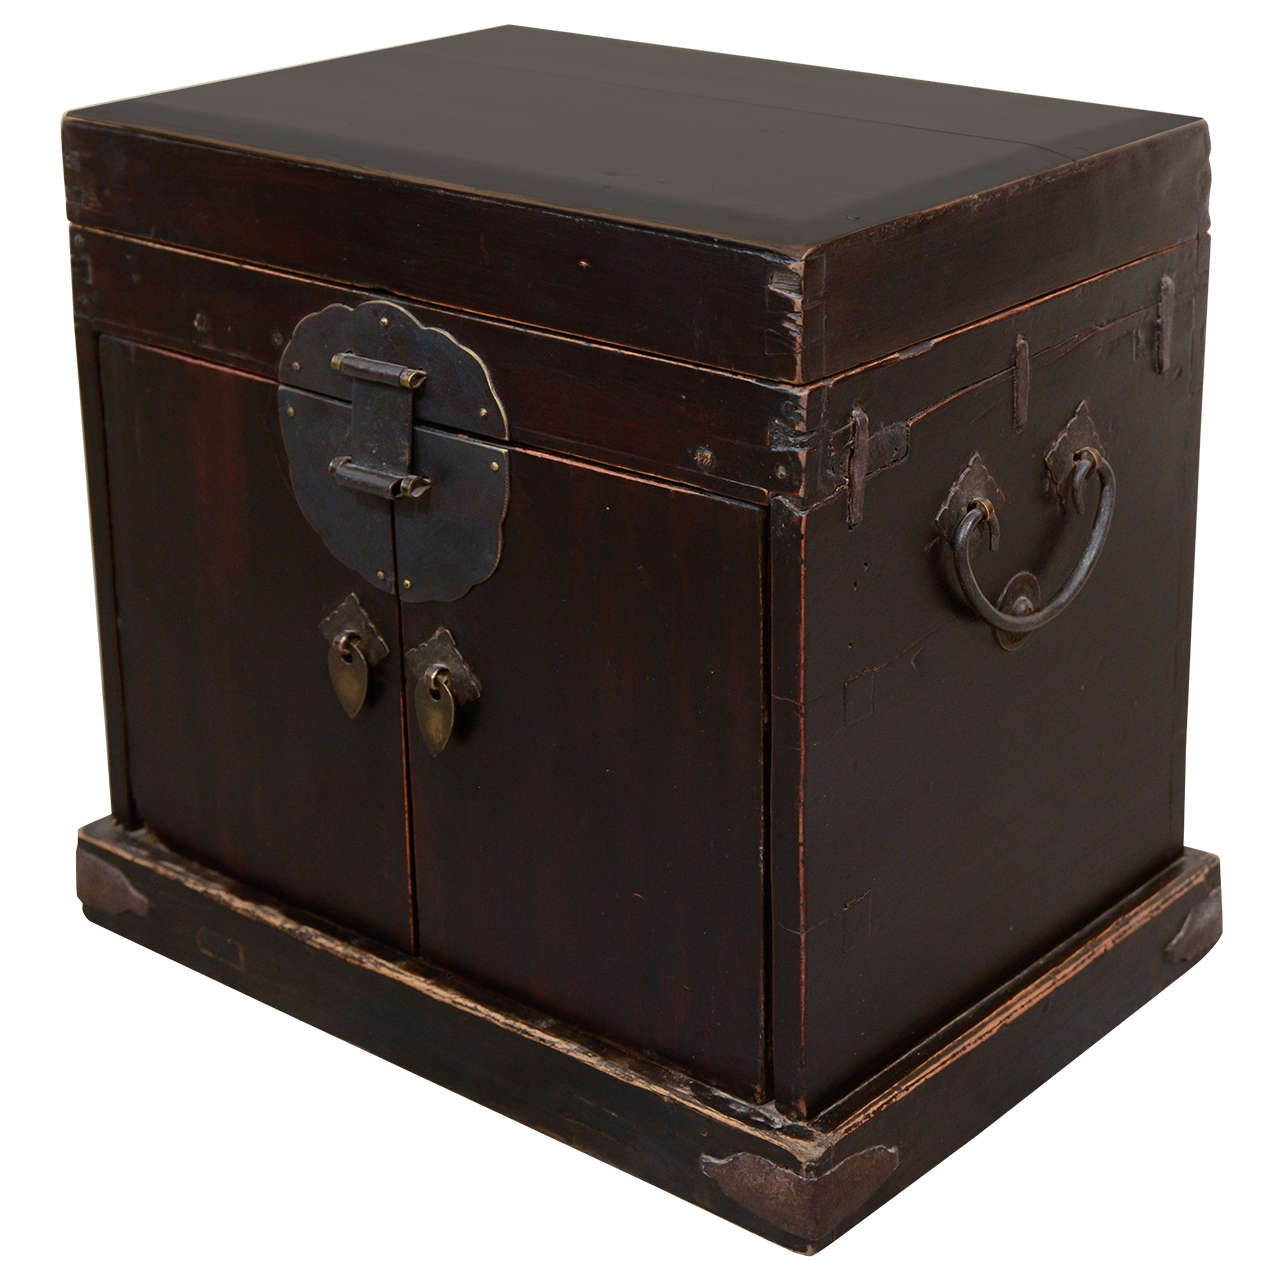 Antique jewelry box with drawers for sale at 1stdibs for Furniture box